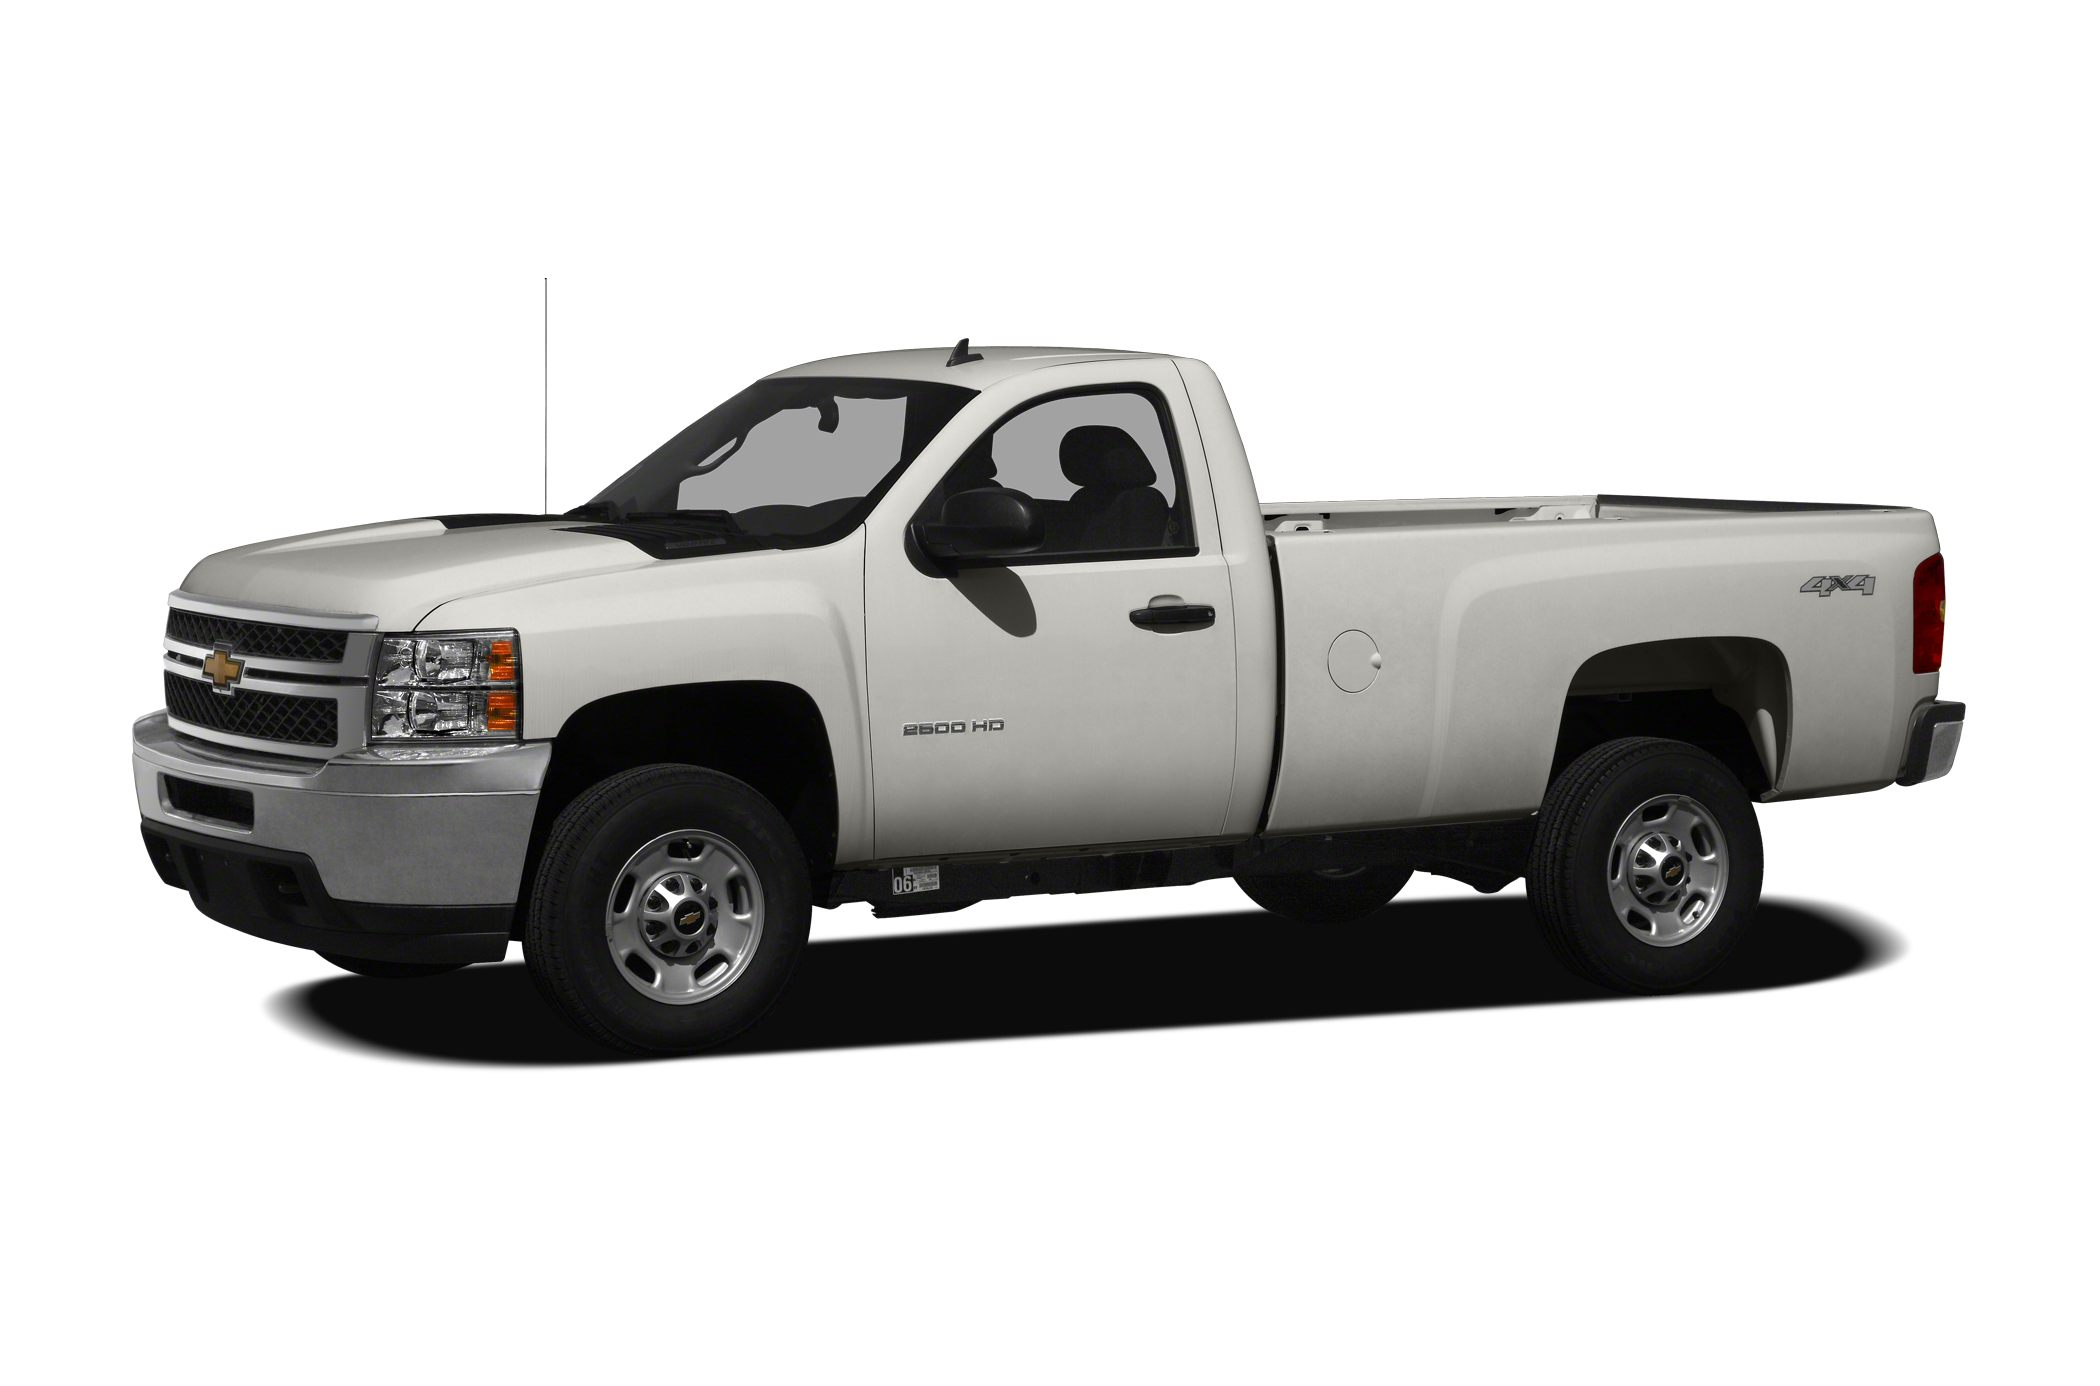 2011 Dodge Ram 2500 Reviews - Autoblog and New Car Test Drive